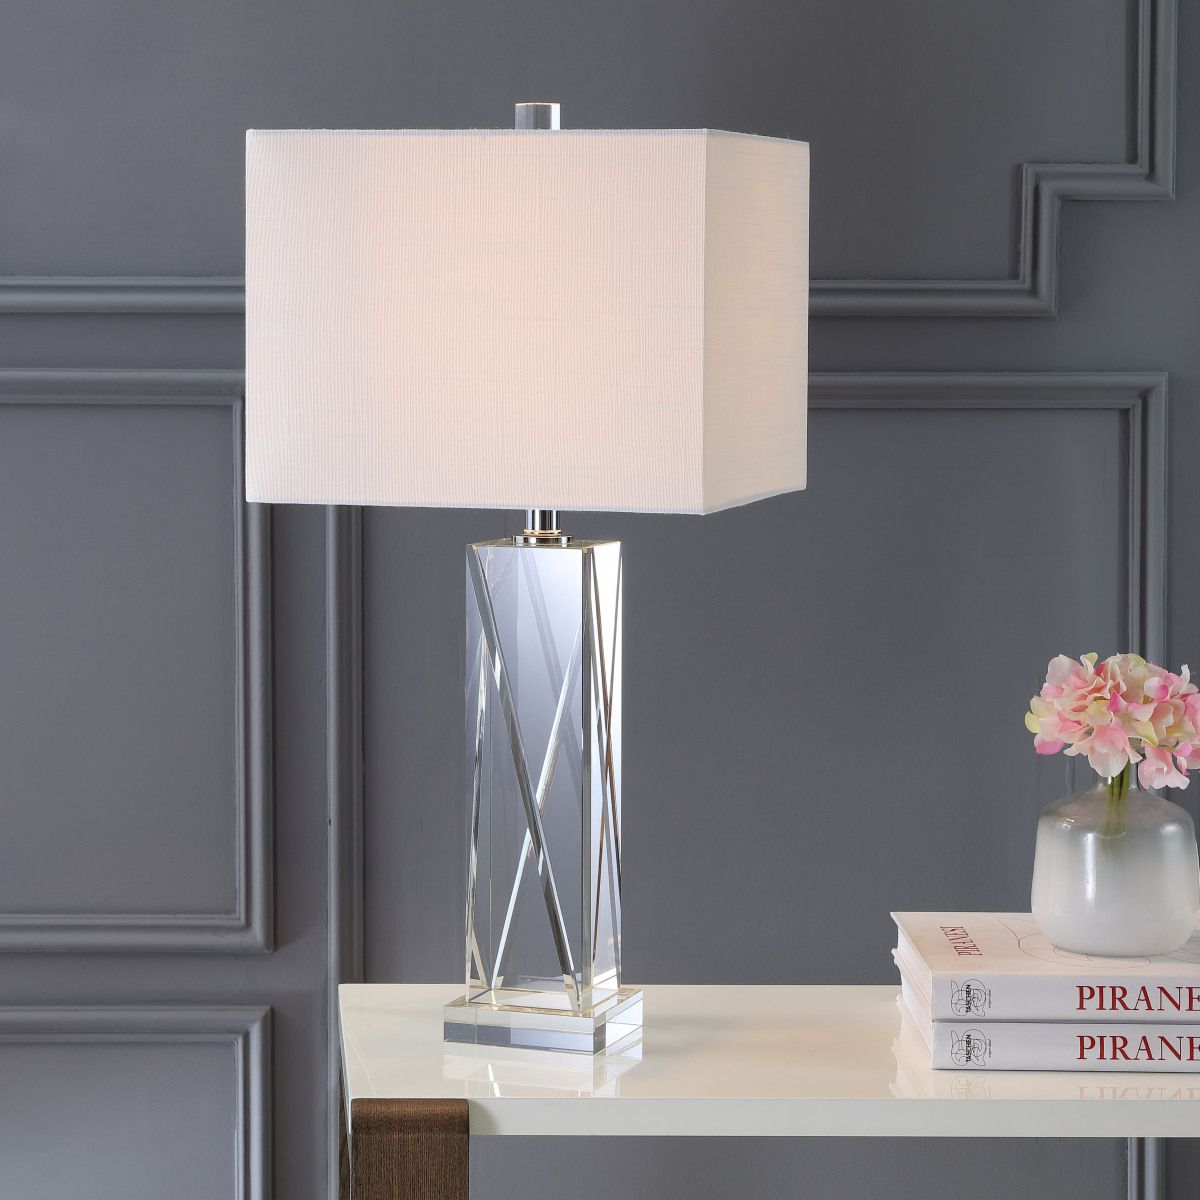 Emilio 26 5 Crystal Led Table Lamp Clear Eyely Crystal Table Lamps Modern Table Lamp Led Table Lamp [ 1200 x 1200 Pixel ]